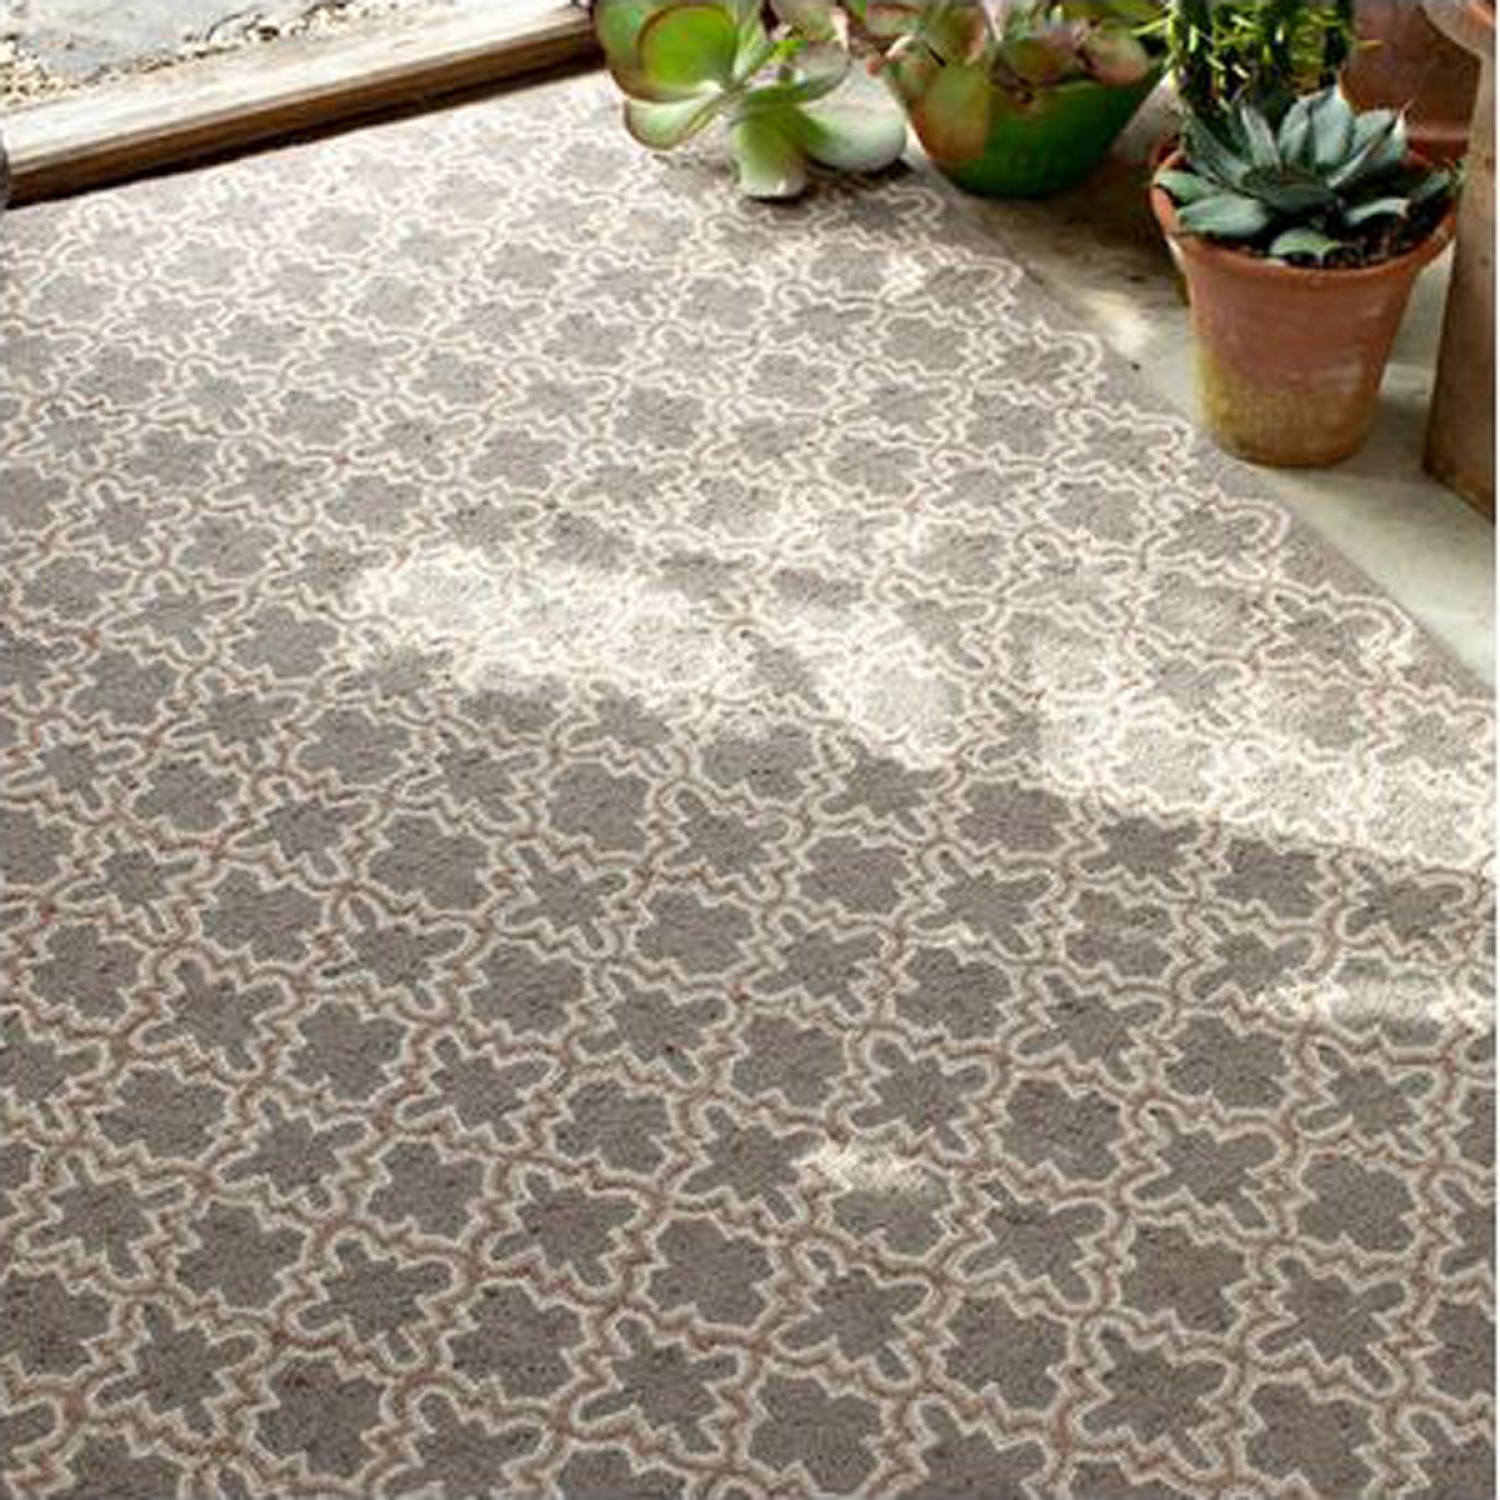 awesome Dash And Albert Rugs plain tin charcoal wool micro hooked rug for floor decor ideas